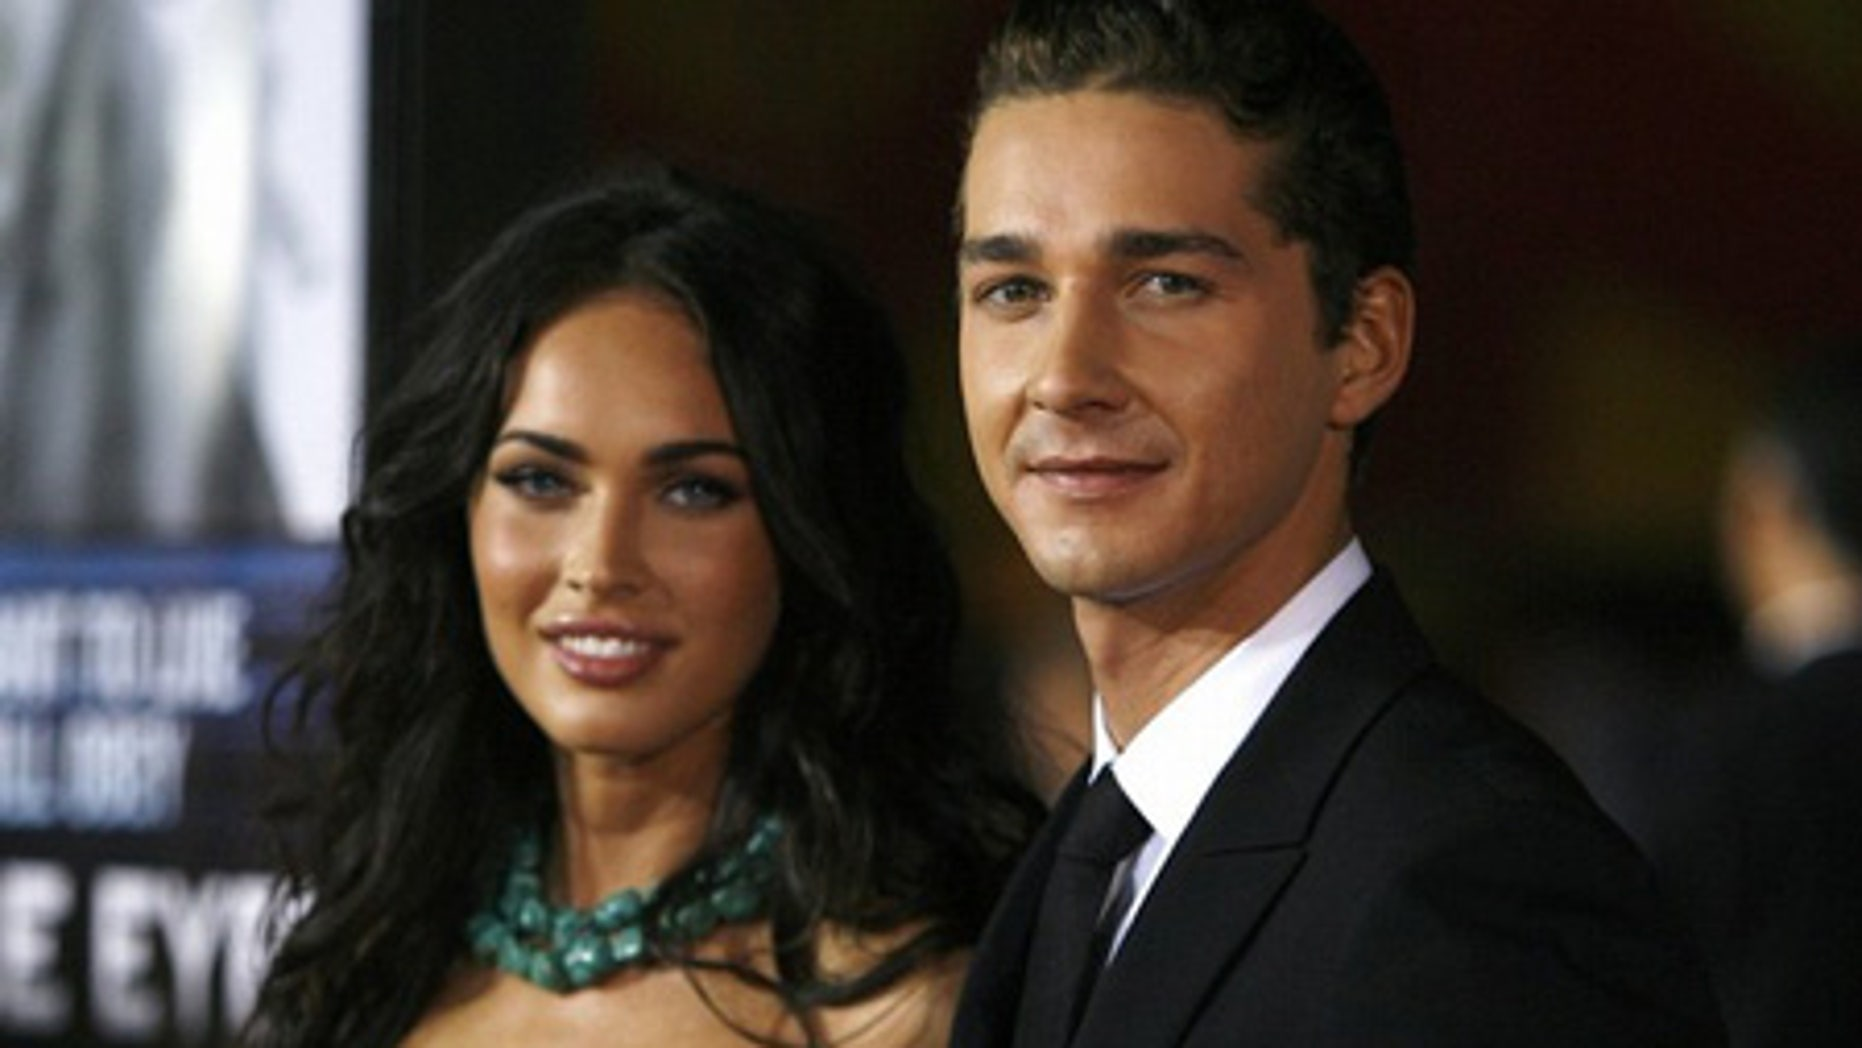 Megan Fox Confirms Past Shia LaBeouf Romance